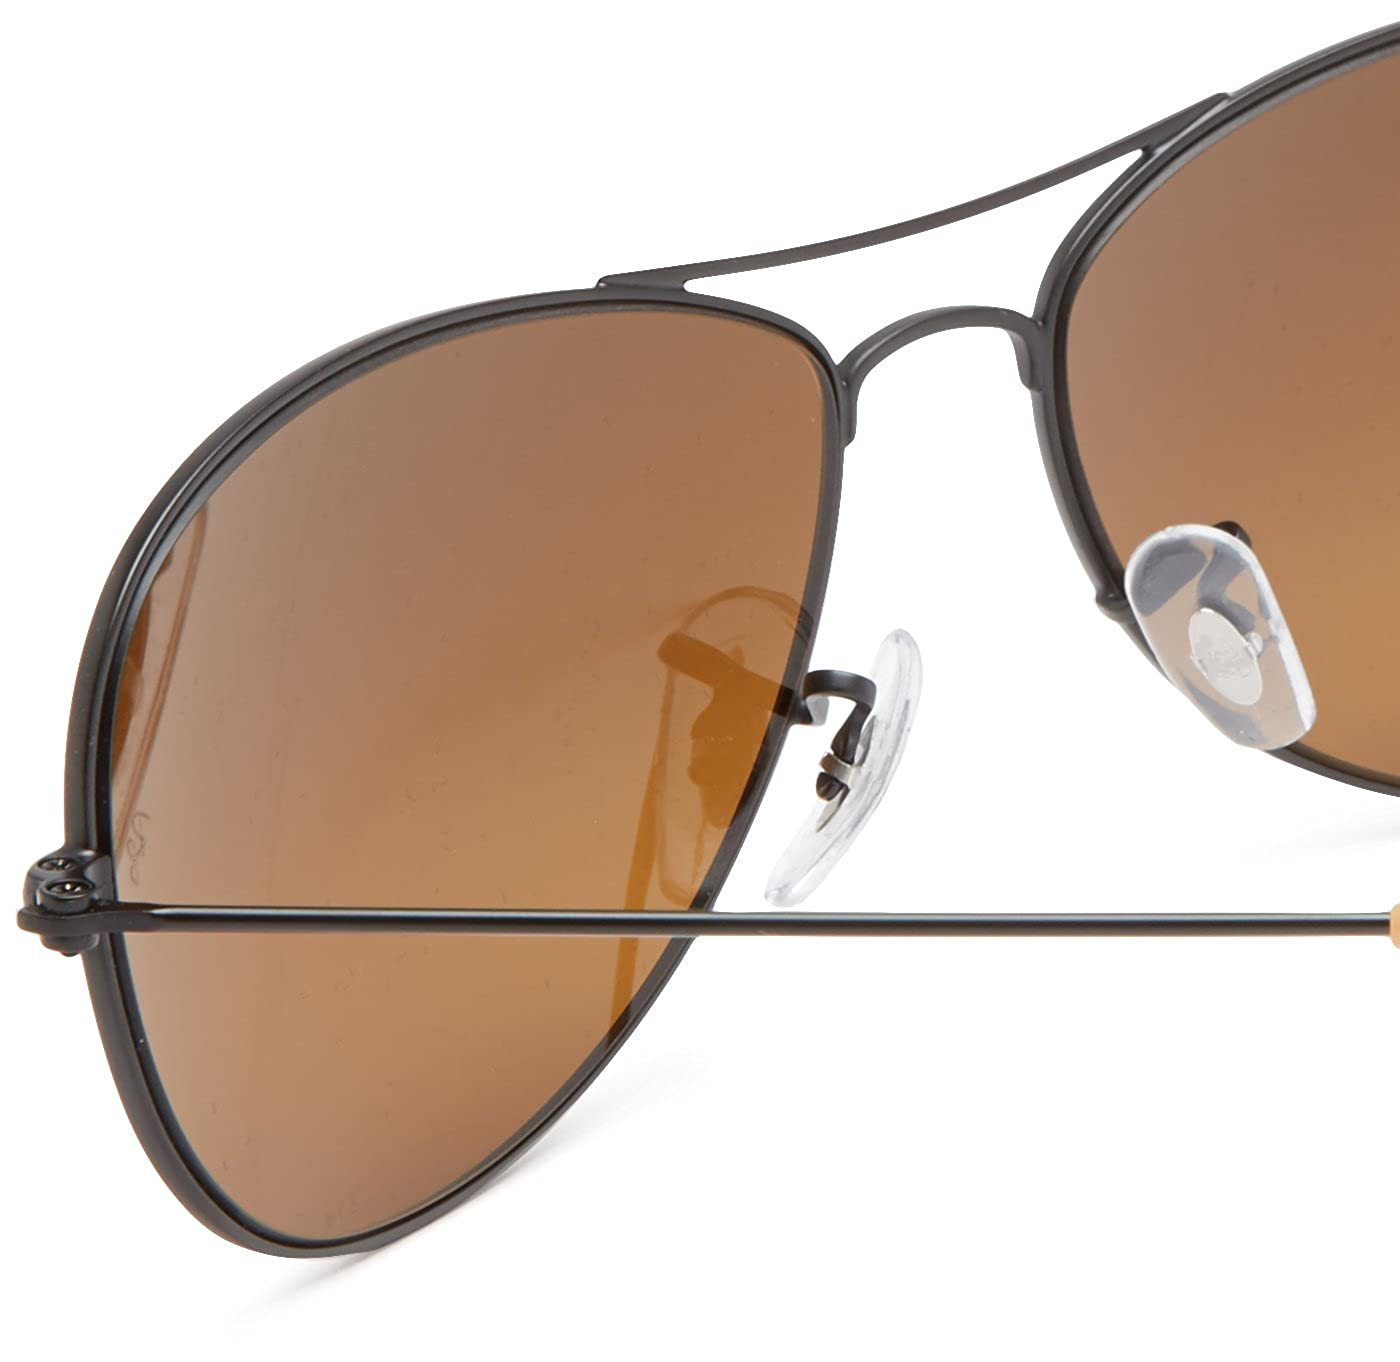 85080e75a9 Ray-Ban COCKPIT - MATTE BLACK Frame BROWN SILVER MIRROR GRADIENT Lenses  56mm Non-Polarized  Amazon.in  Clothing   Accessories